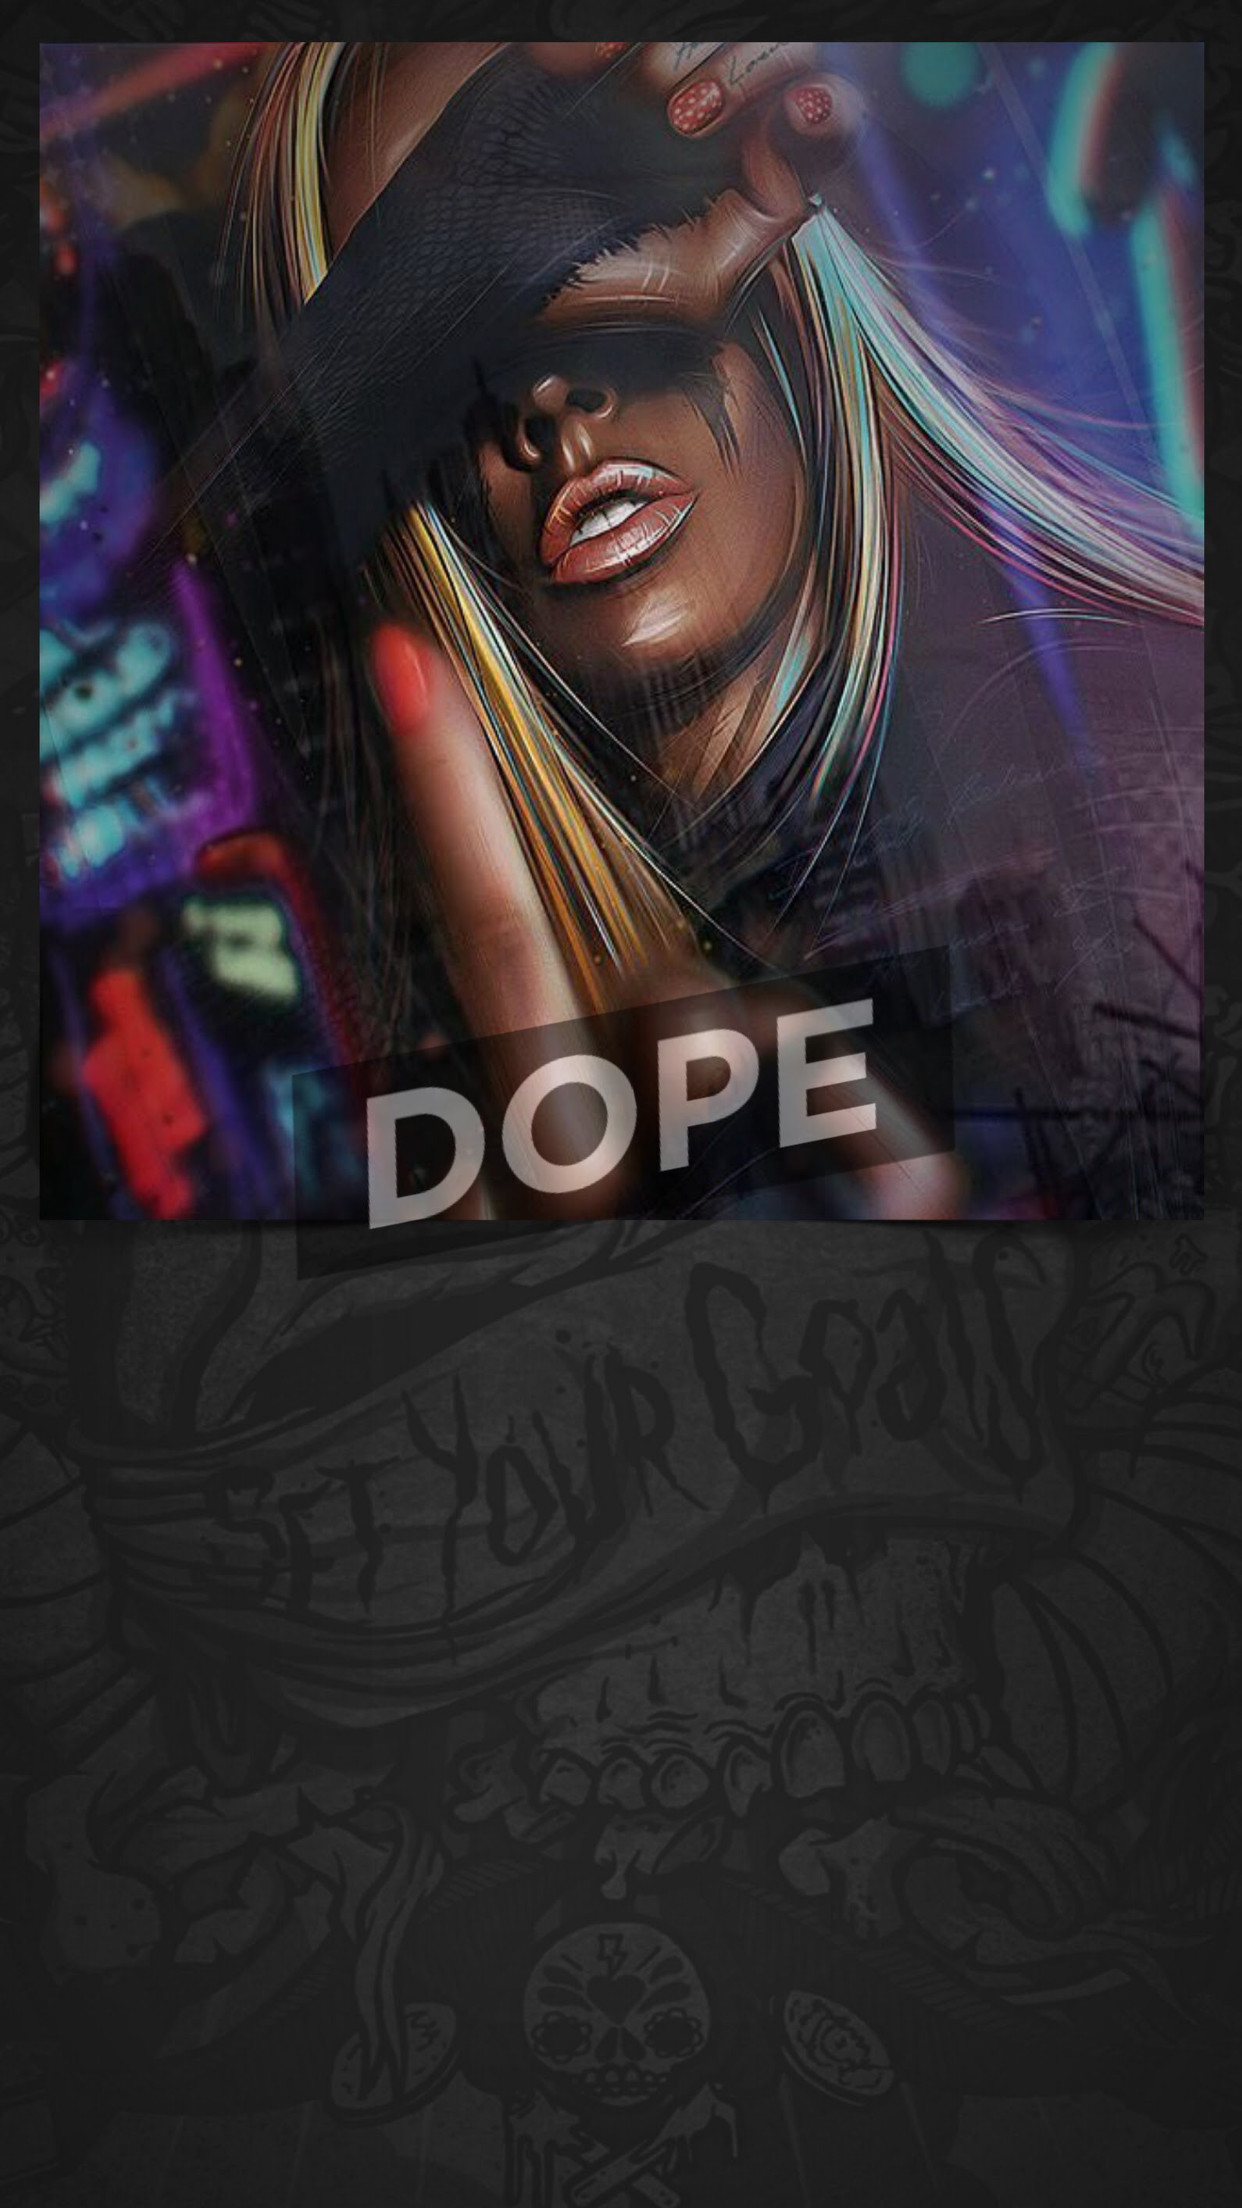 dope iphone wallpaper most dope backgrounds 73 images 1290